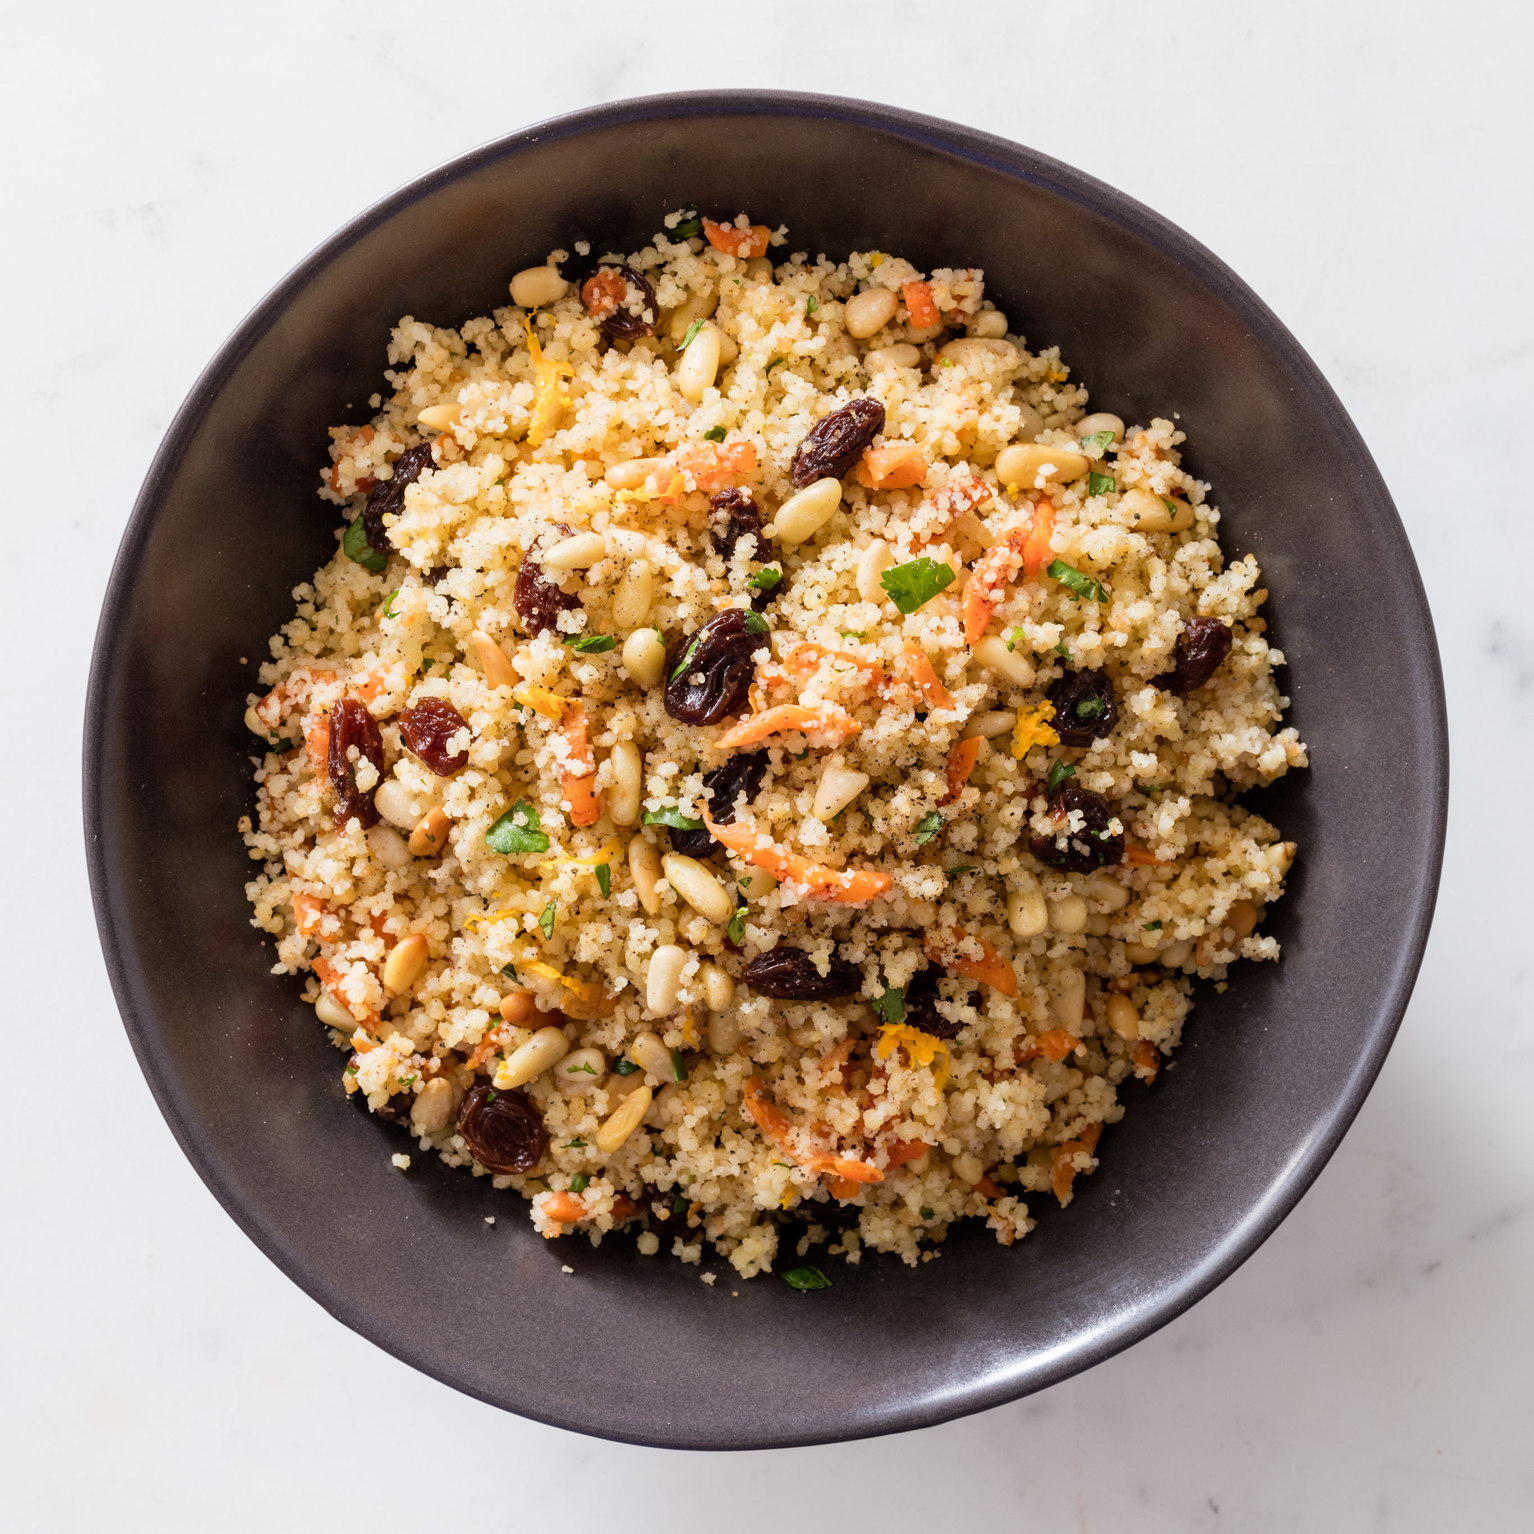 Couscous with Carrots, Raisins, and Pine Nuts